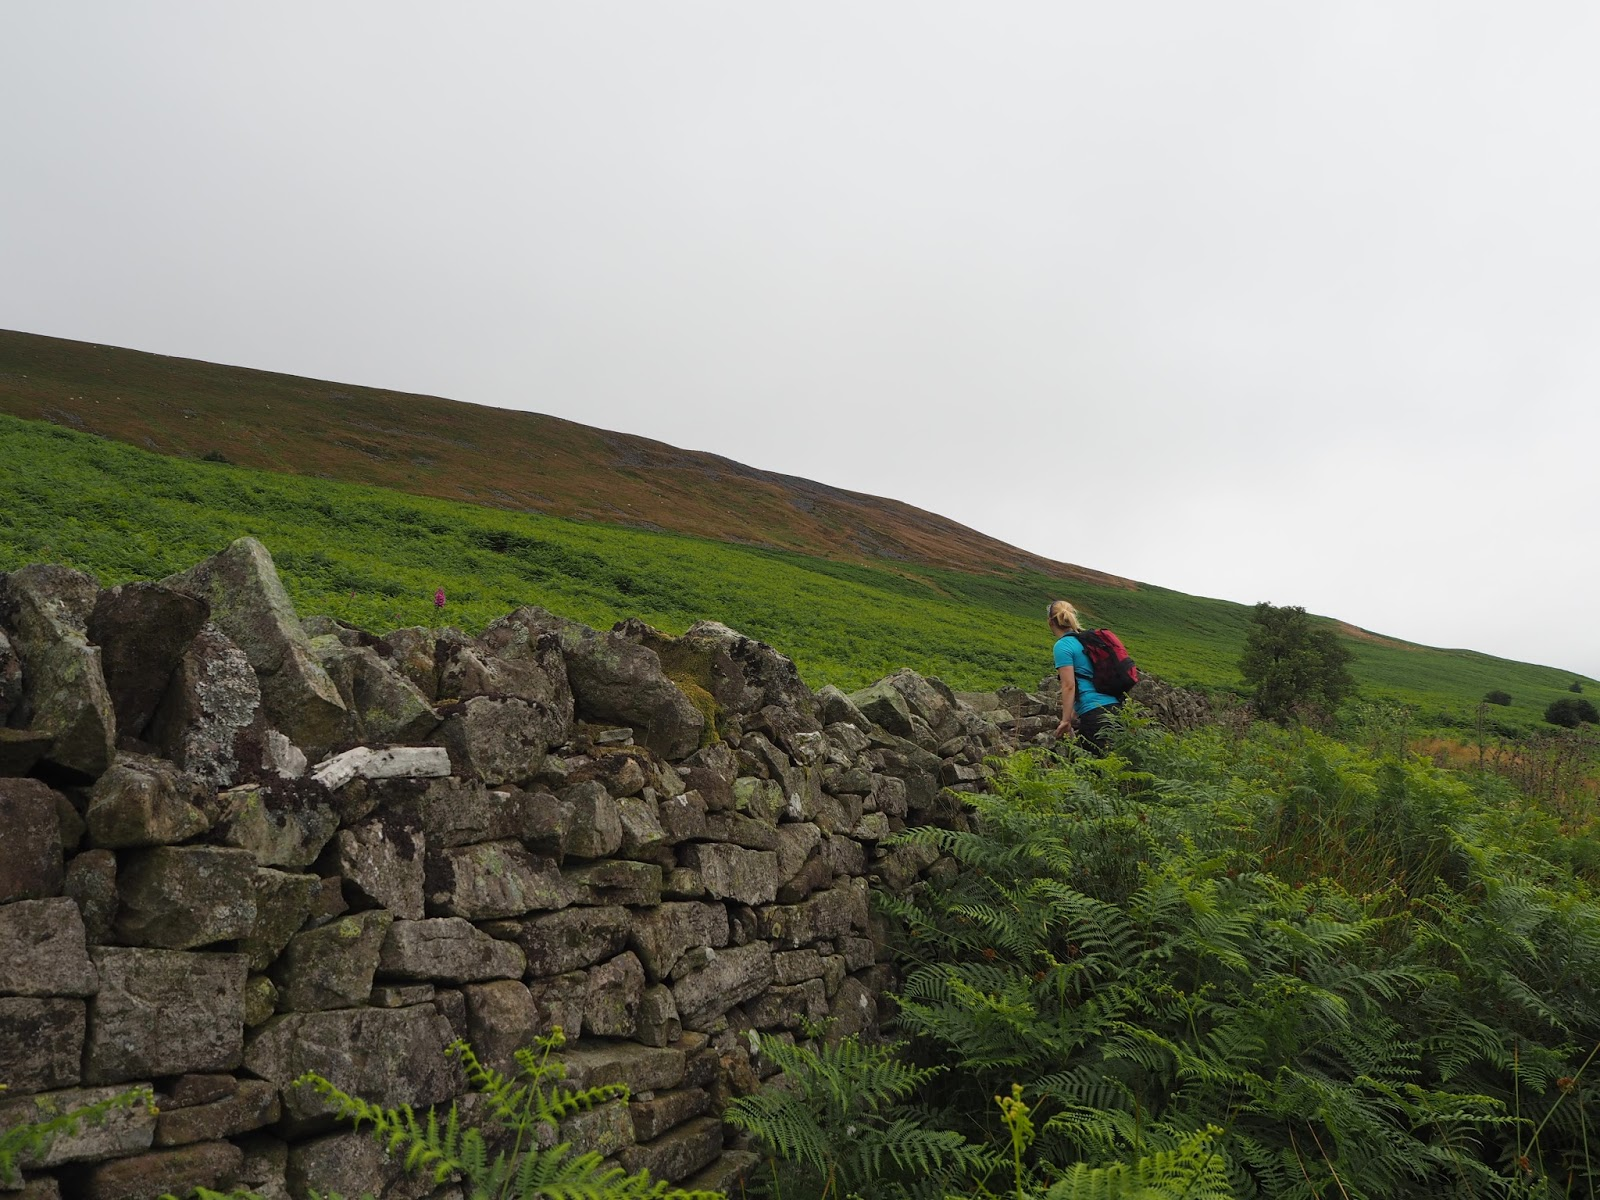 A weekend in the Brecon Beacons, Wales